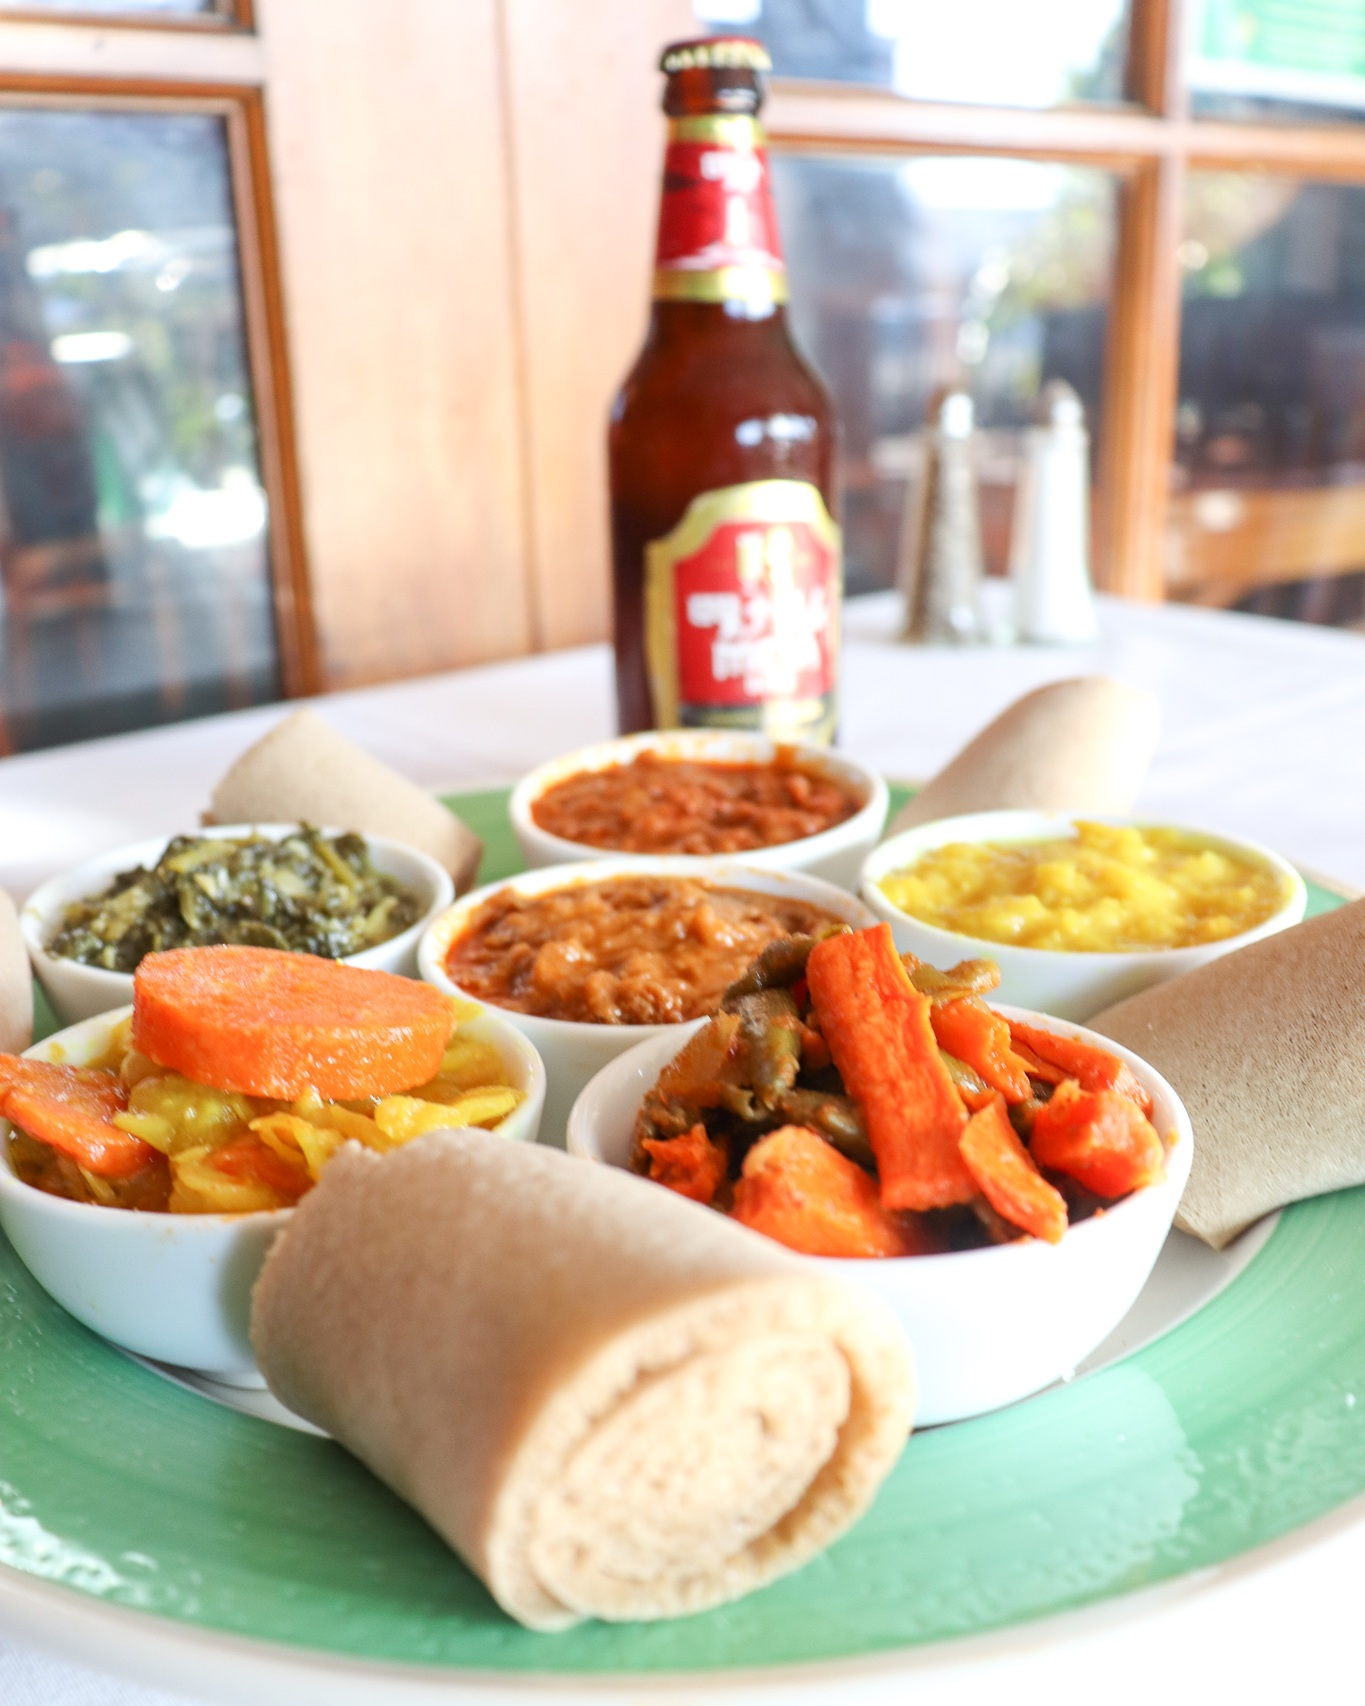 Vegetarians rejoice - Our veggie combo is made with fresh ingredients like carrots, peas, cabbage, lentils, and more!